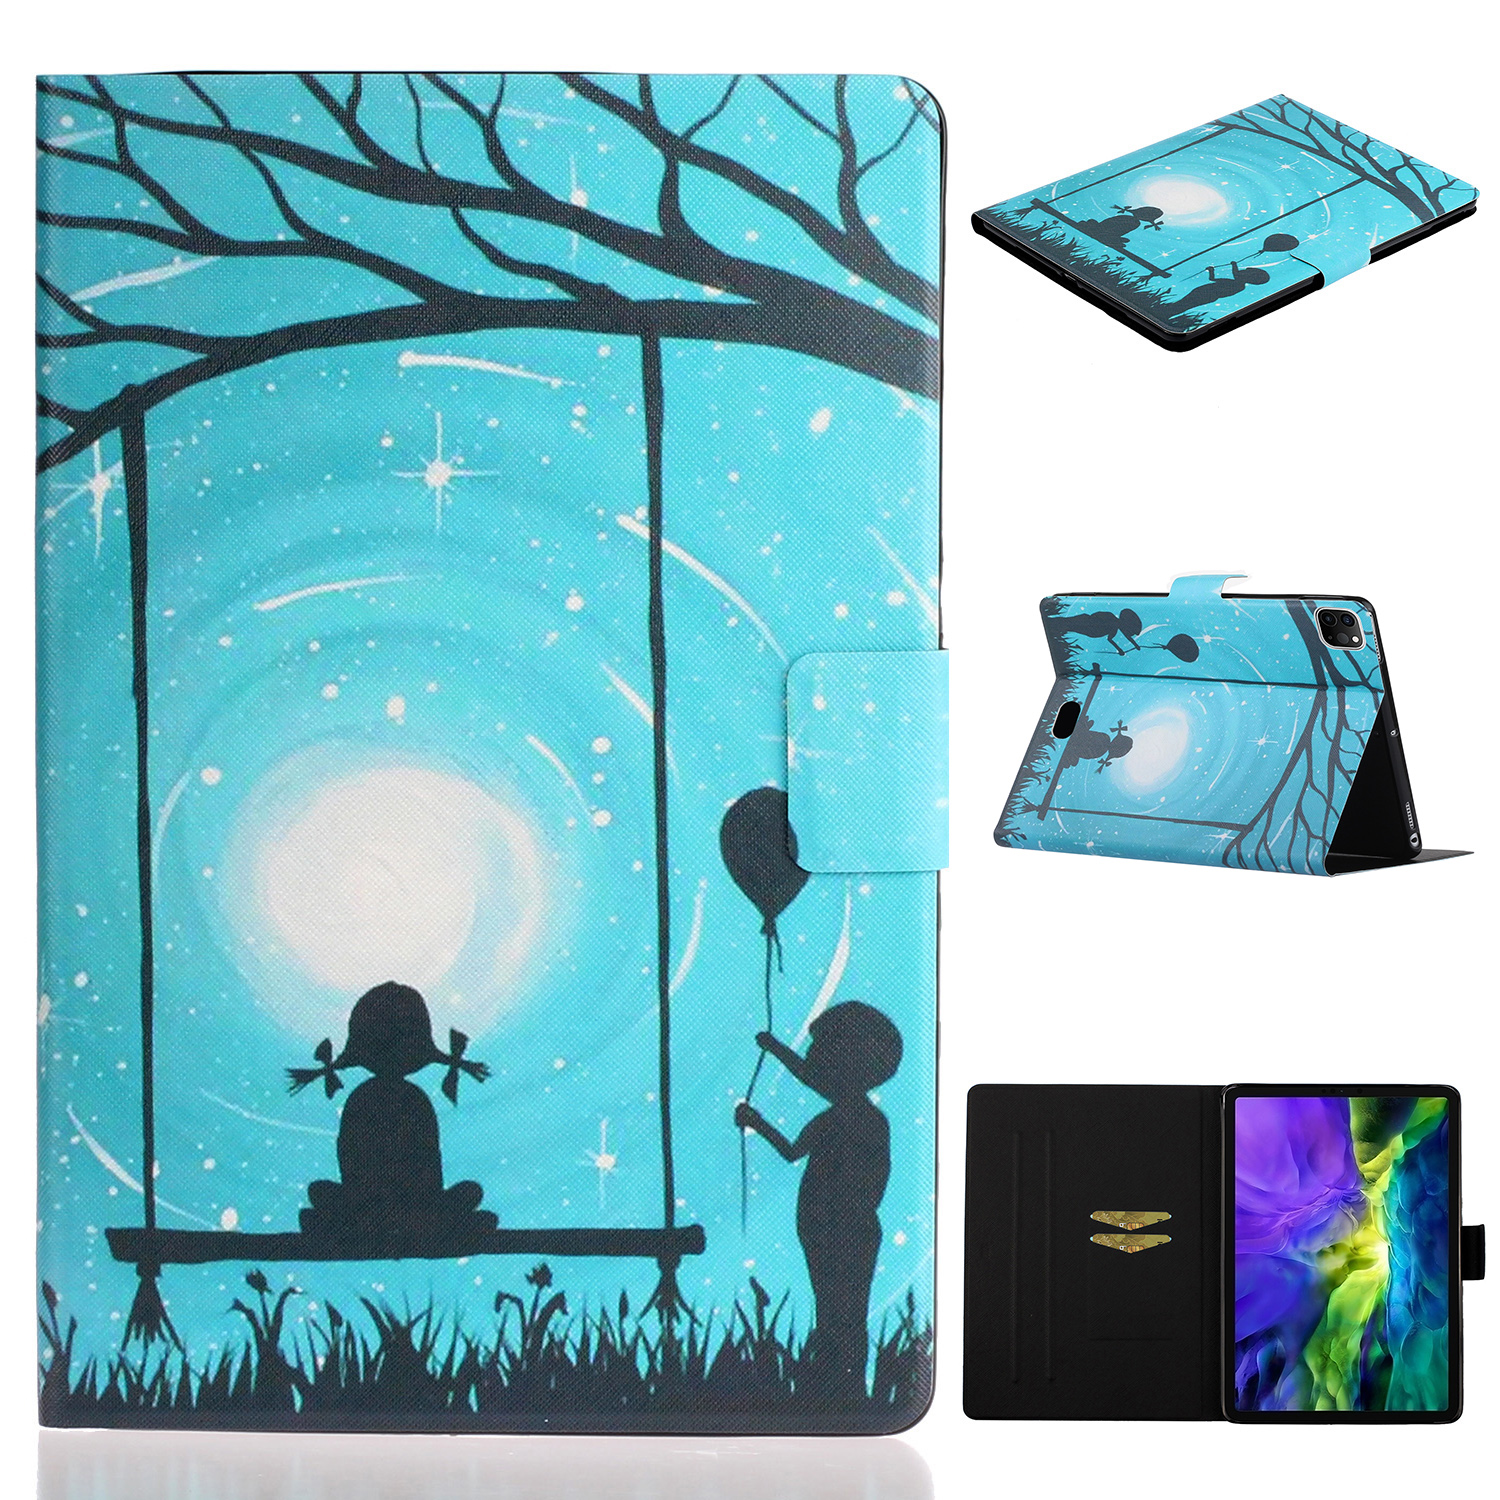 2 White For iPad Pro 11 inch 2020 Case Cheap PU Leather Painted Smart Folio Case for iPad